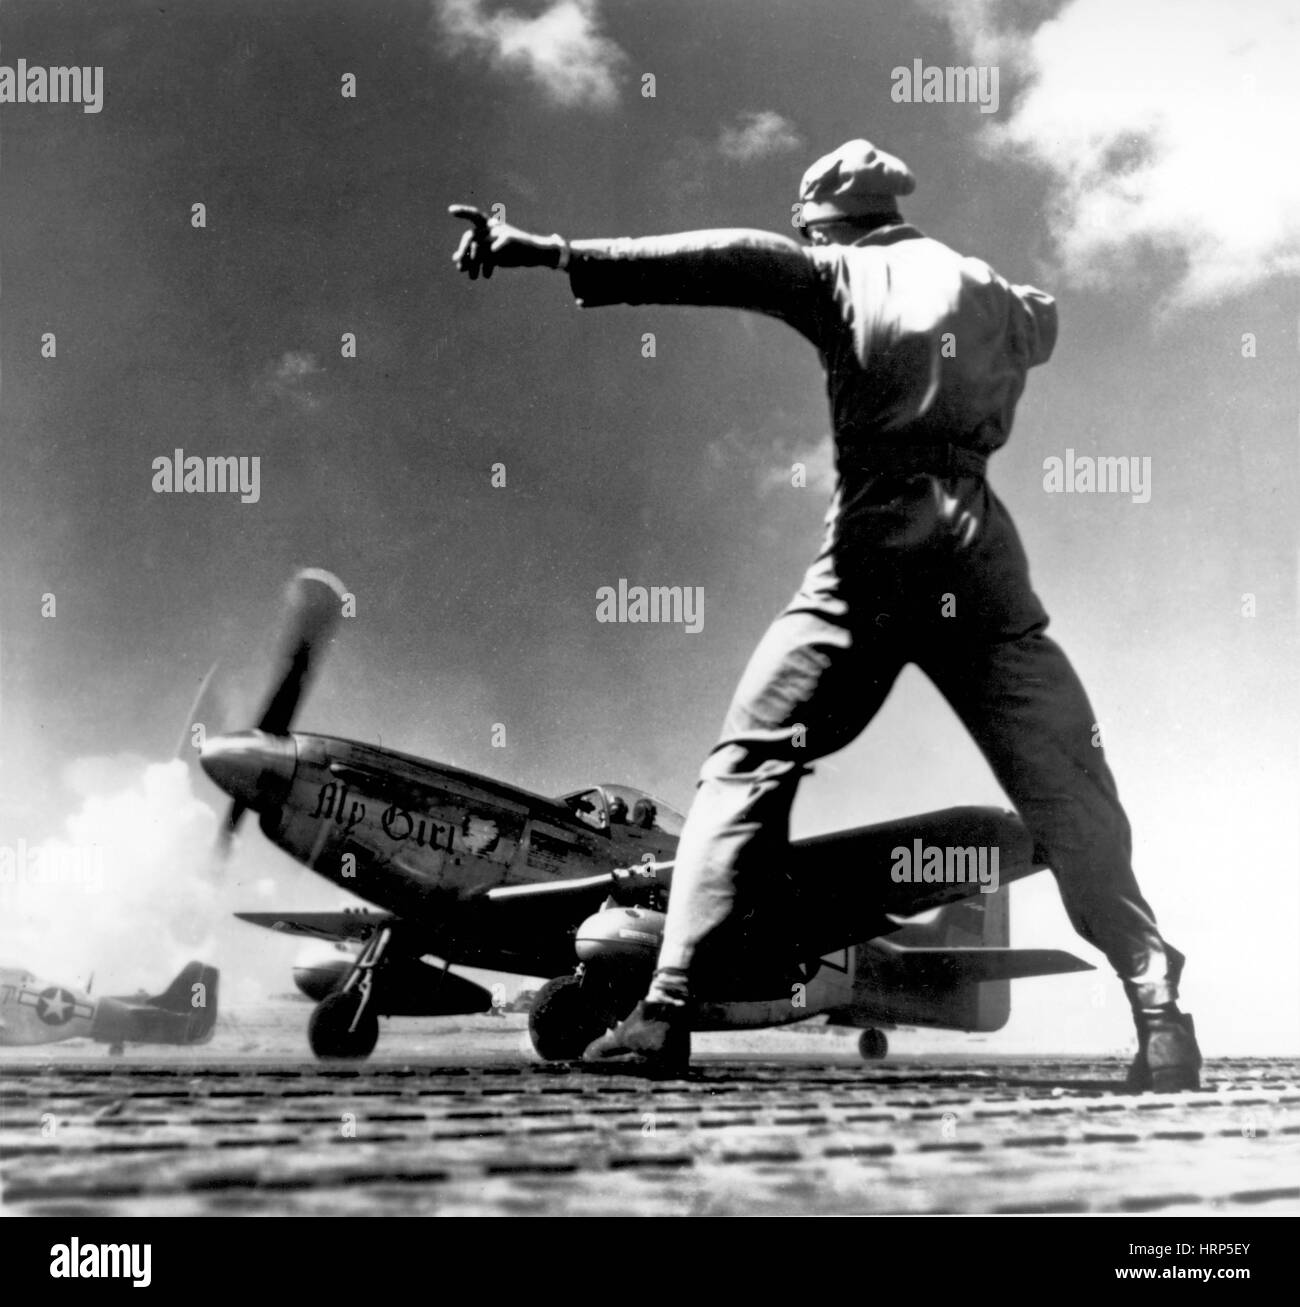 WWII, North American P-51 Mustang, 1940s - Stock Image